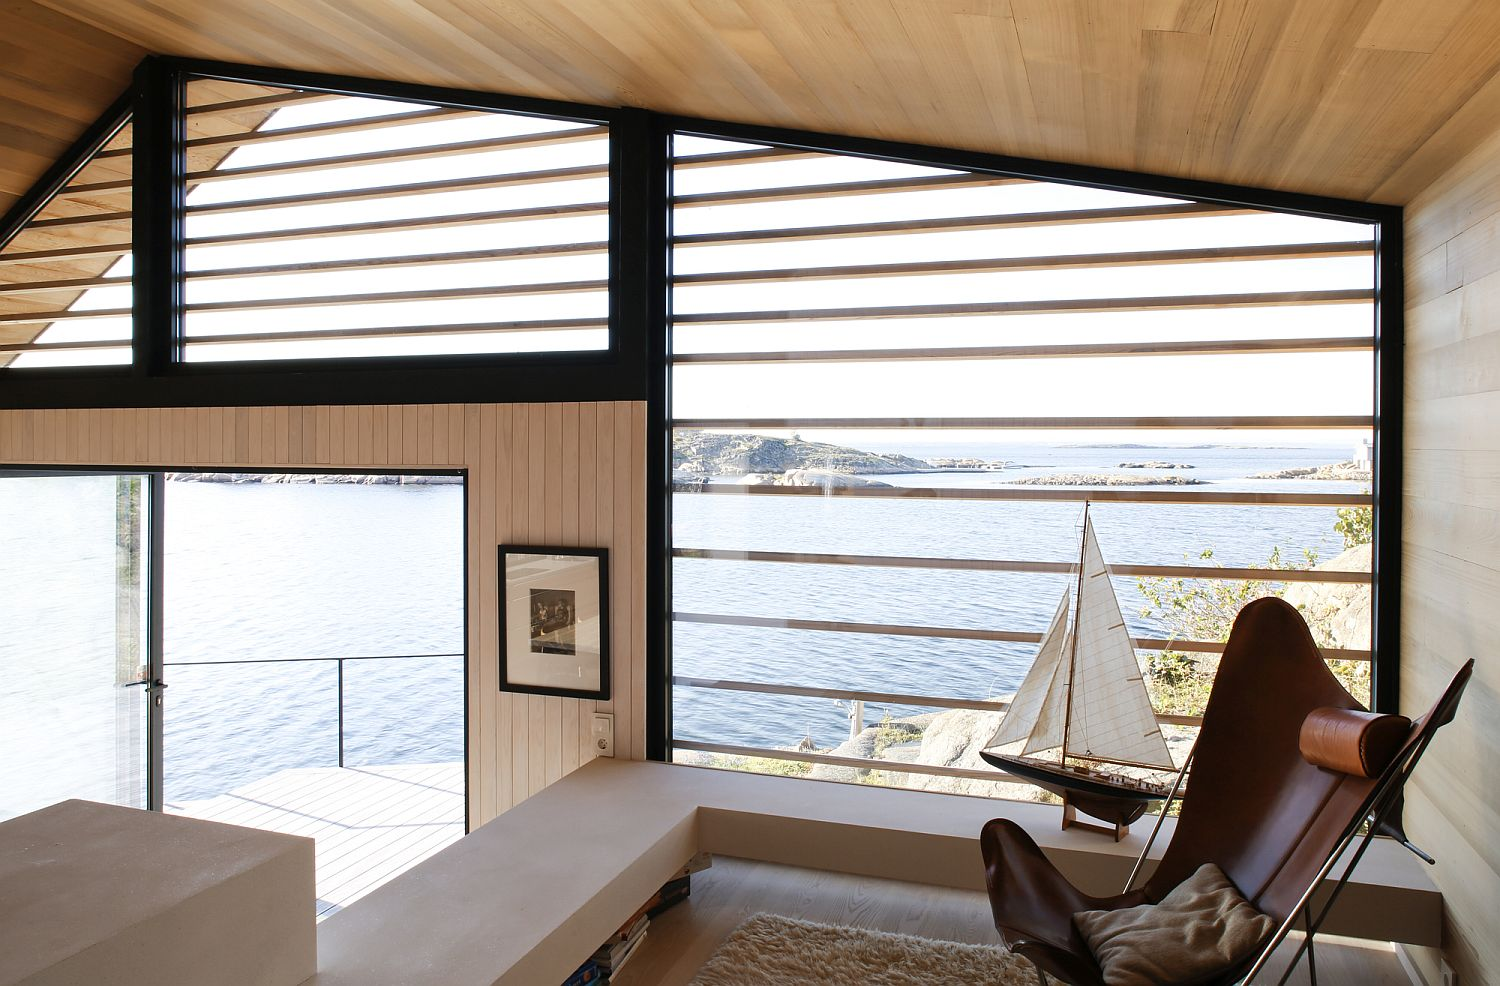 View-of-the-sea-and-the-coastal-landscape-from-the-comfy-nook-inside-the-cabin